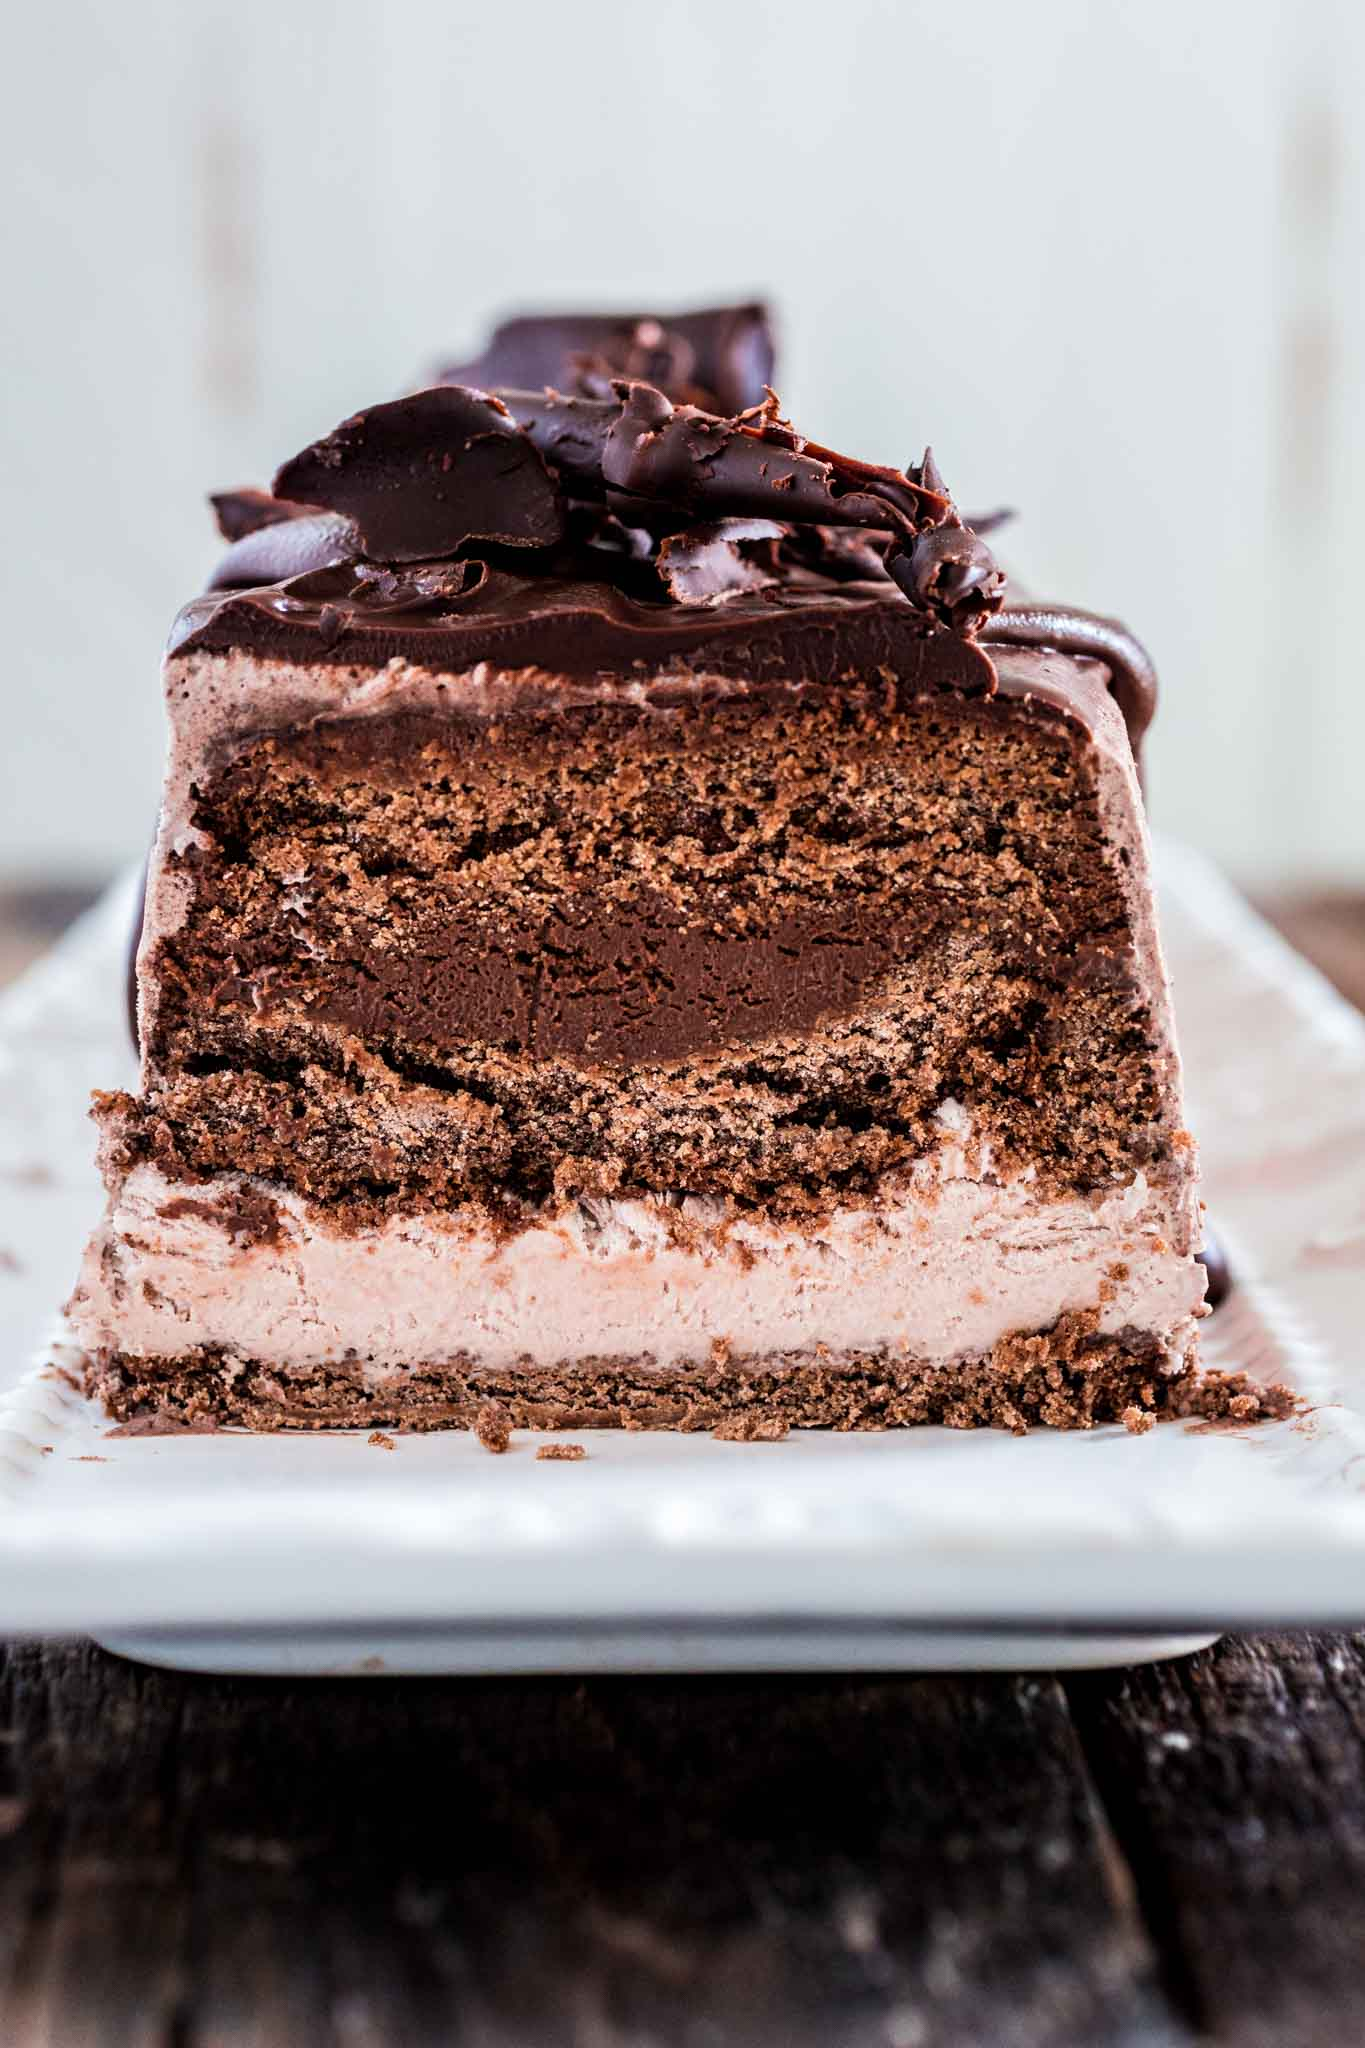 Chocolate Ice Cream Cake | www.oliviascuisine.com | This make-ahead chocolate ice cream cake has everything a chocoholic desires: chocolate cake, chocolate mousse and chocolate ice cream. It is a delightful dessert to celebrate a birthday or end a fabulous dinner party! (Sponsored by @CuriousCreamery) #CuriousCreamery #ad